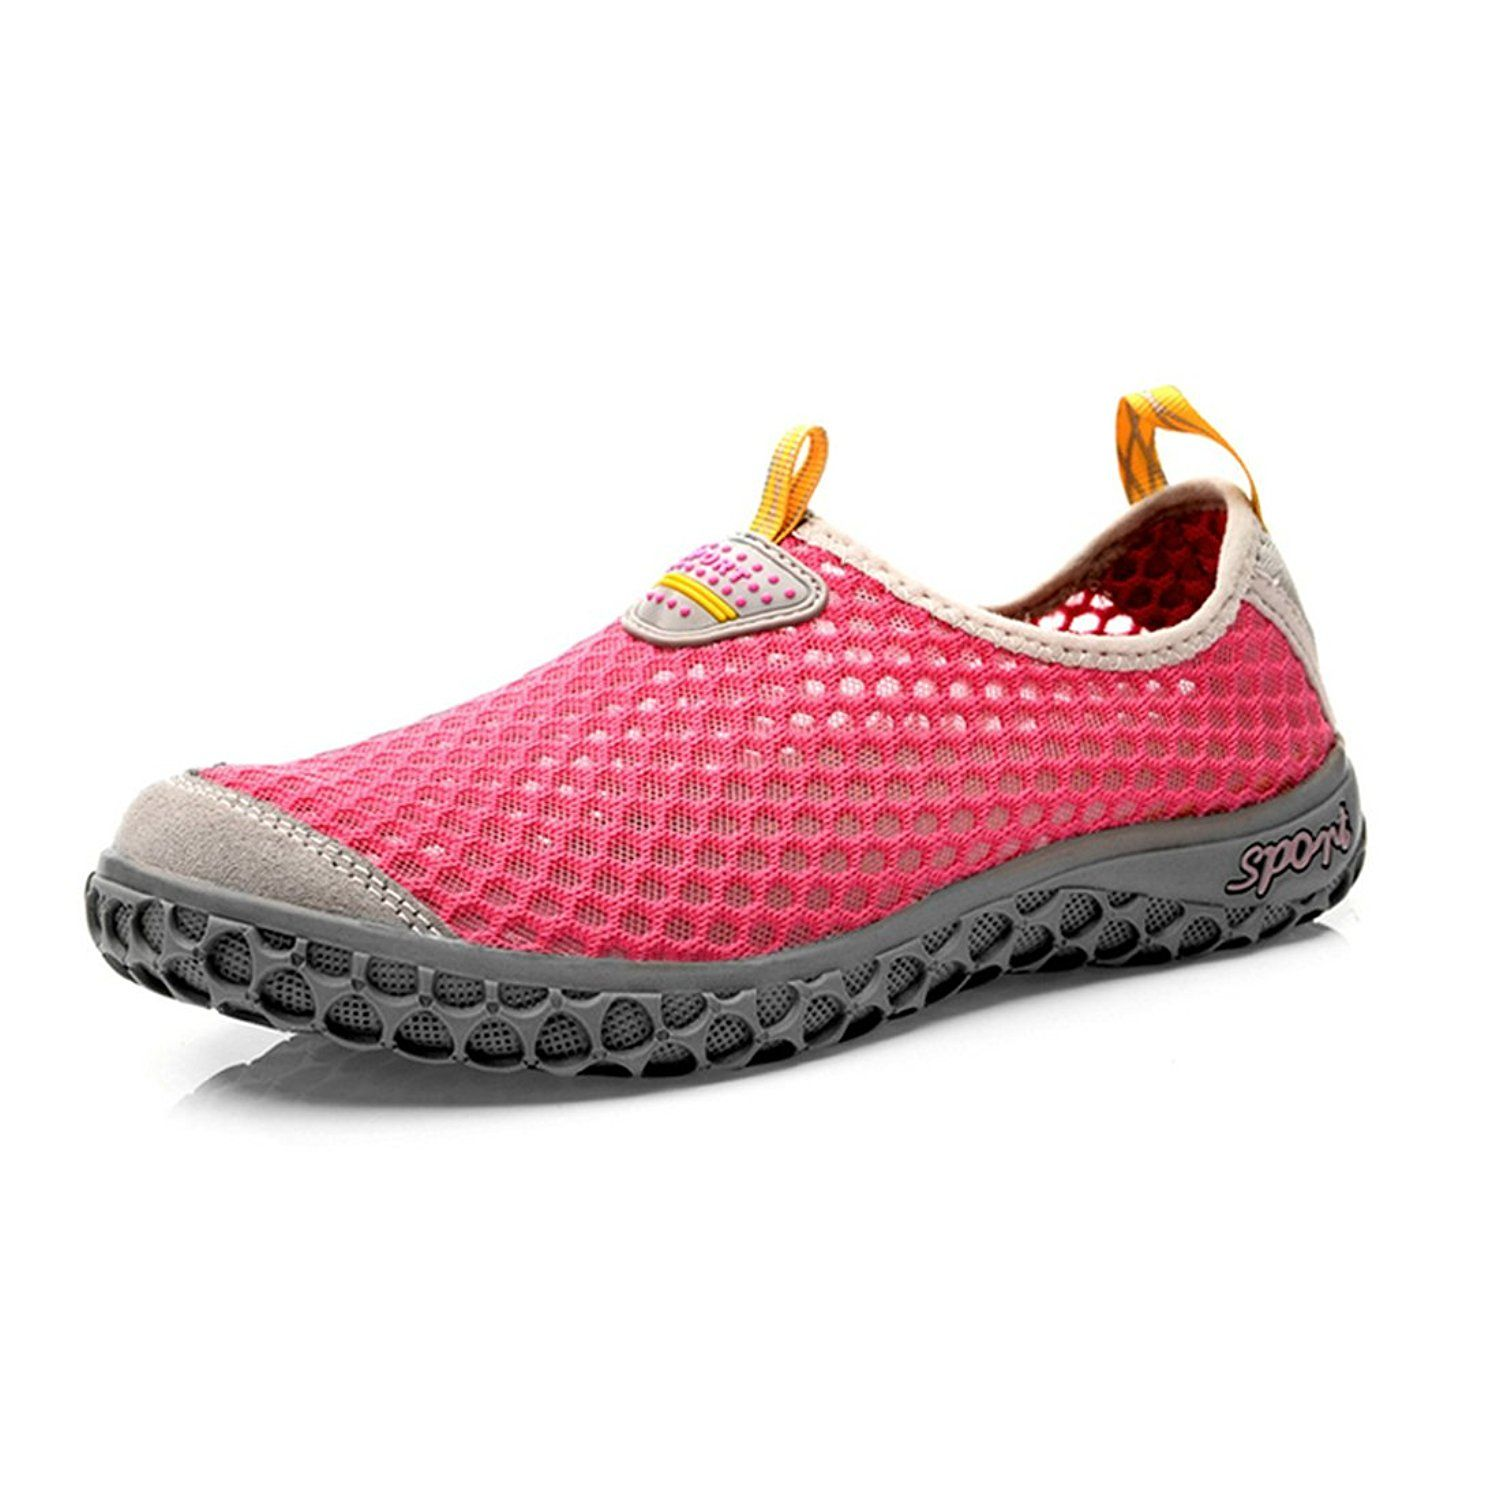 TDA Quick-Dry Water Shoes Beach Swim Shoes Aqua Socks Pool Barefoot Shoes For Water Sports Snorkeling Diving Swimming Surf Water Aerobics Yoga